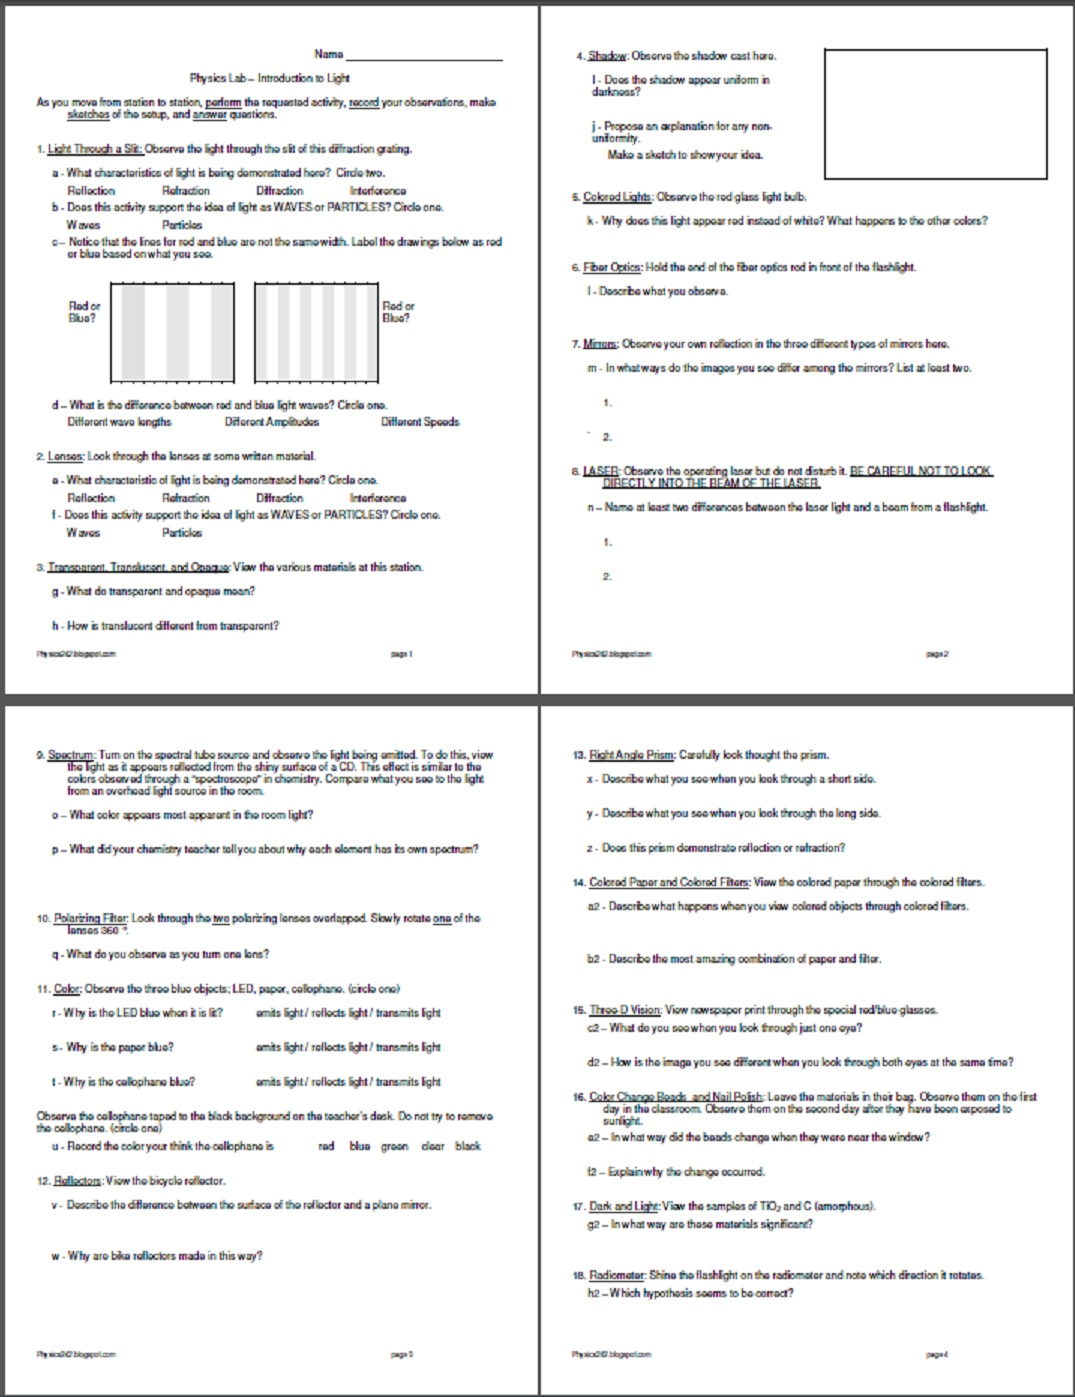 worksheet Transparent Translucent Opaque Worksheet worksheet physics242 if you have other great ideas for introductory activities send them and i will add to the list